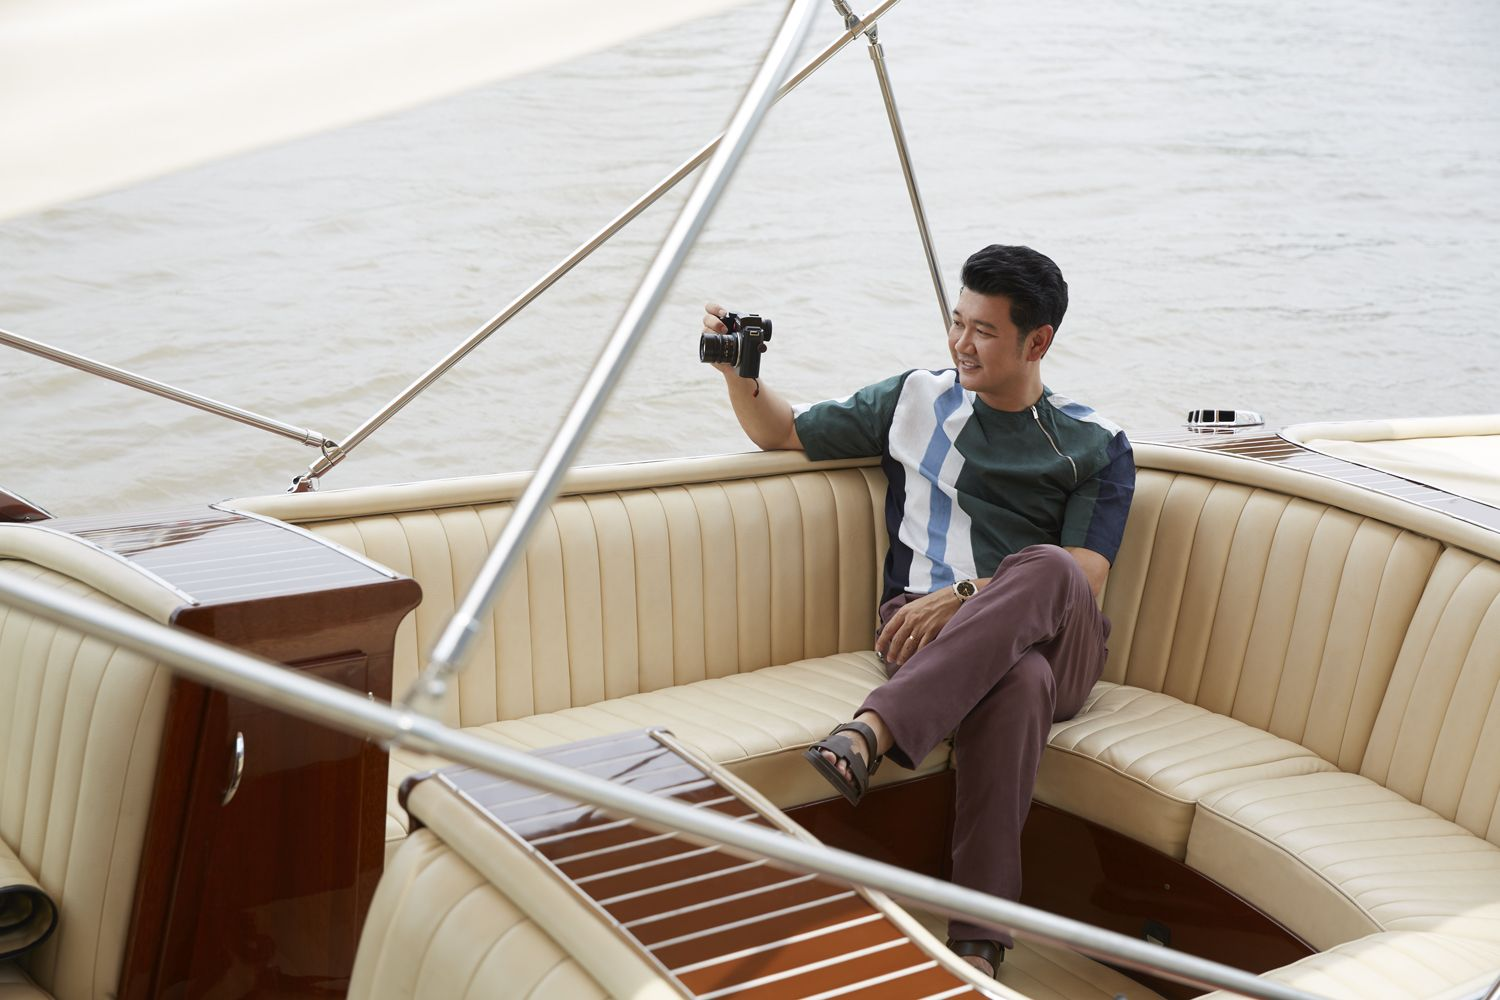 A keen photographer, Sornsak, in a casual ensemble by Hermès, takes pictures with his favourite Leica camera